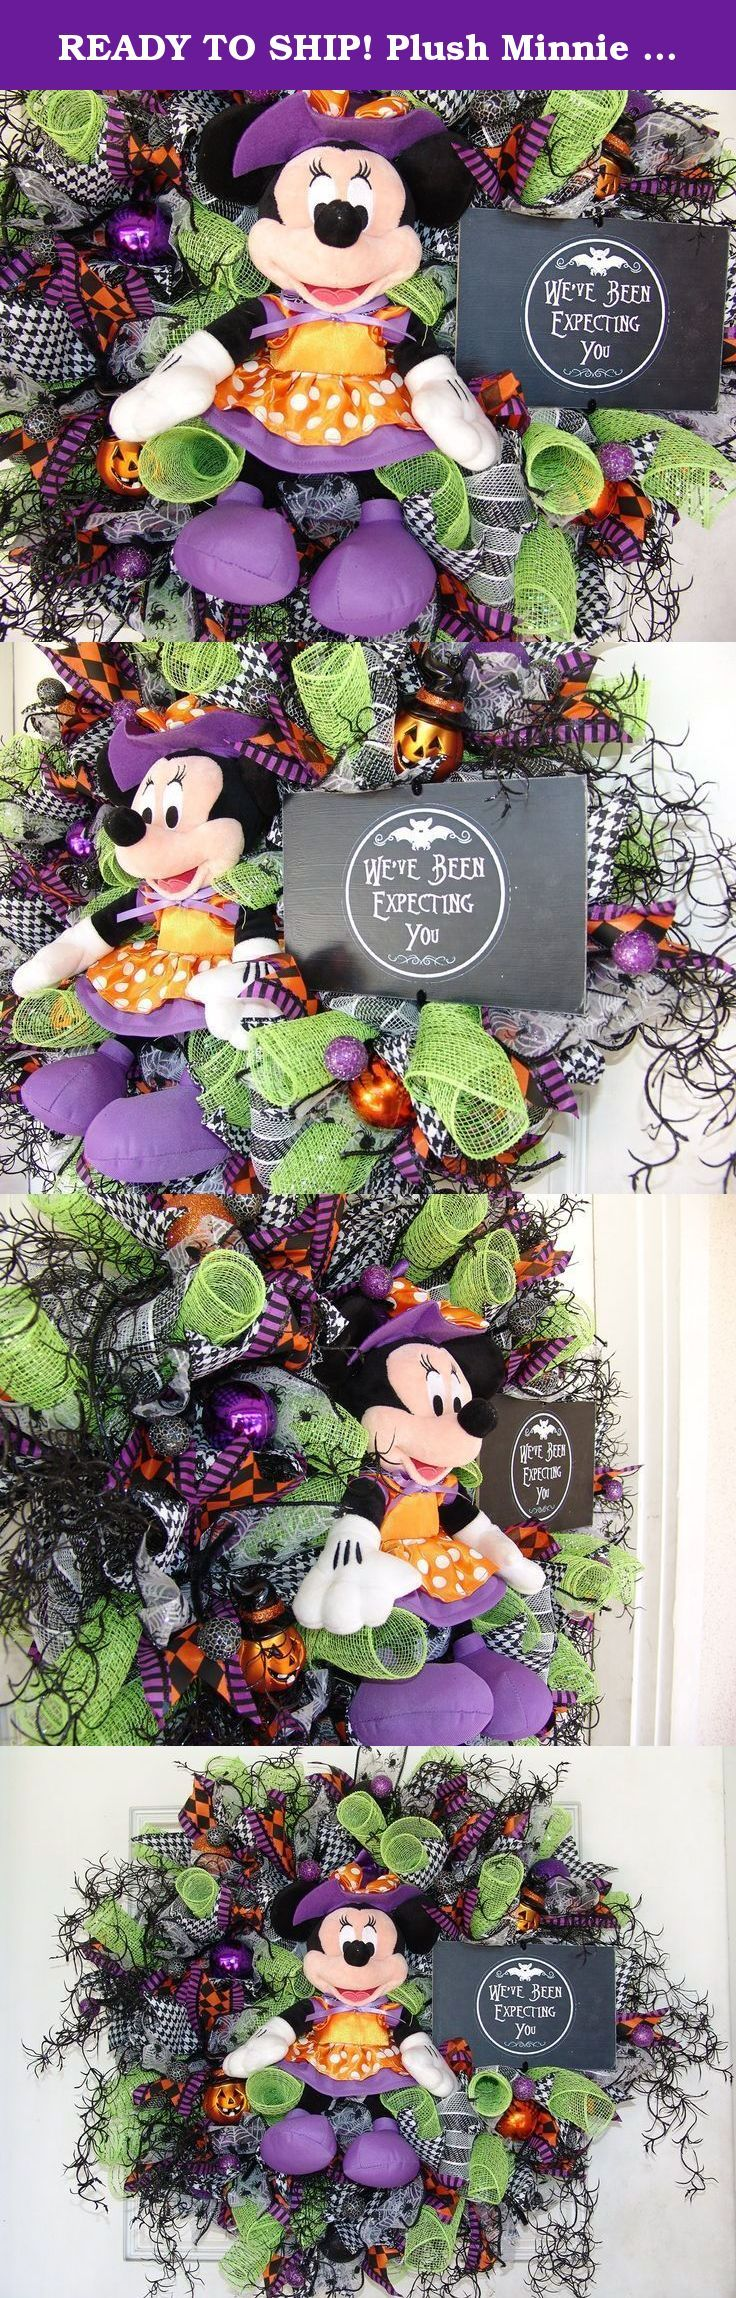 """READY TO SHIP! Plush Minnie Mouse Witch Halloween Wreath Decor Disney, Birthday, Anniversary, Gift, Door Decoration. Oh my goodness, is it wrong to fall in love with my own wreath?? If you think this looks awesome from the photo, wait until you see it in person. The pictures really don't do it justice! Please note that I have a matching Mickey Mouse wreath for sale as well. Sold separately. A gorgeous must have pair of wreaths, especially if you have double doors. Roughly 27""""-28"""". What…"""